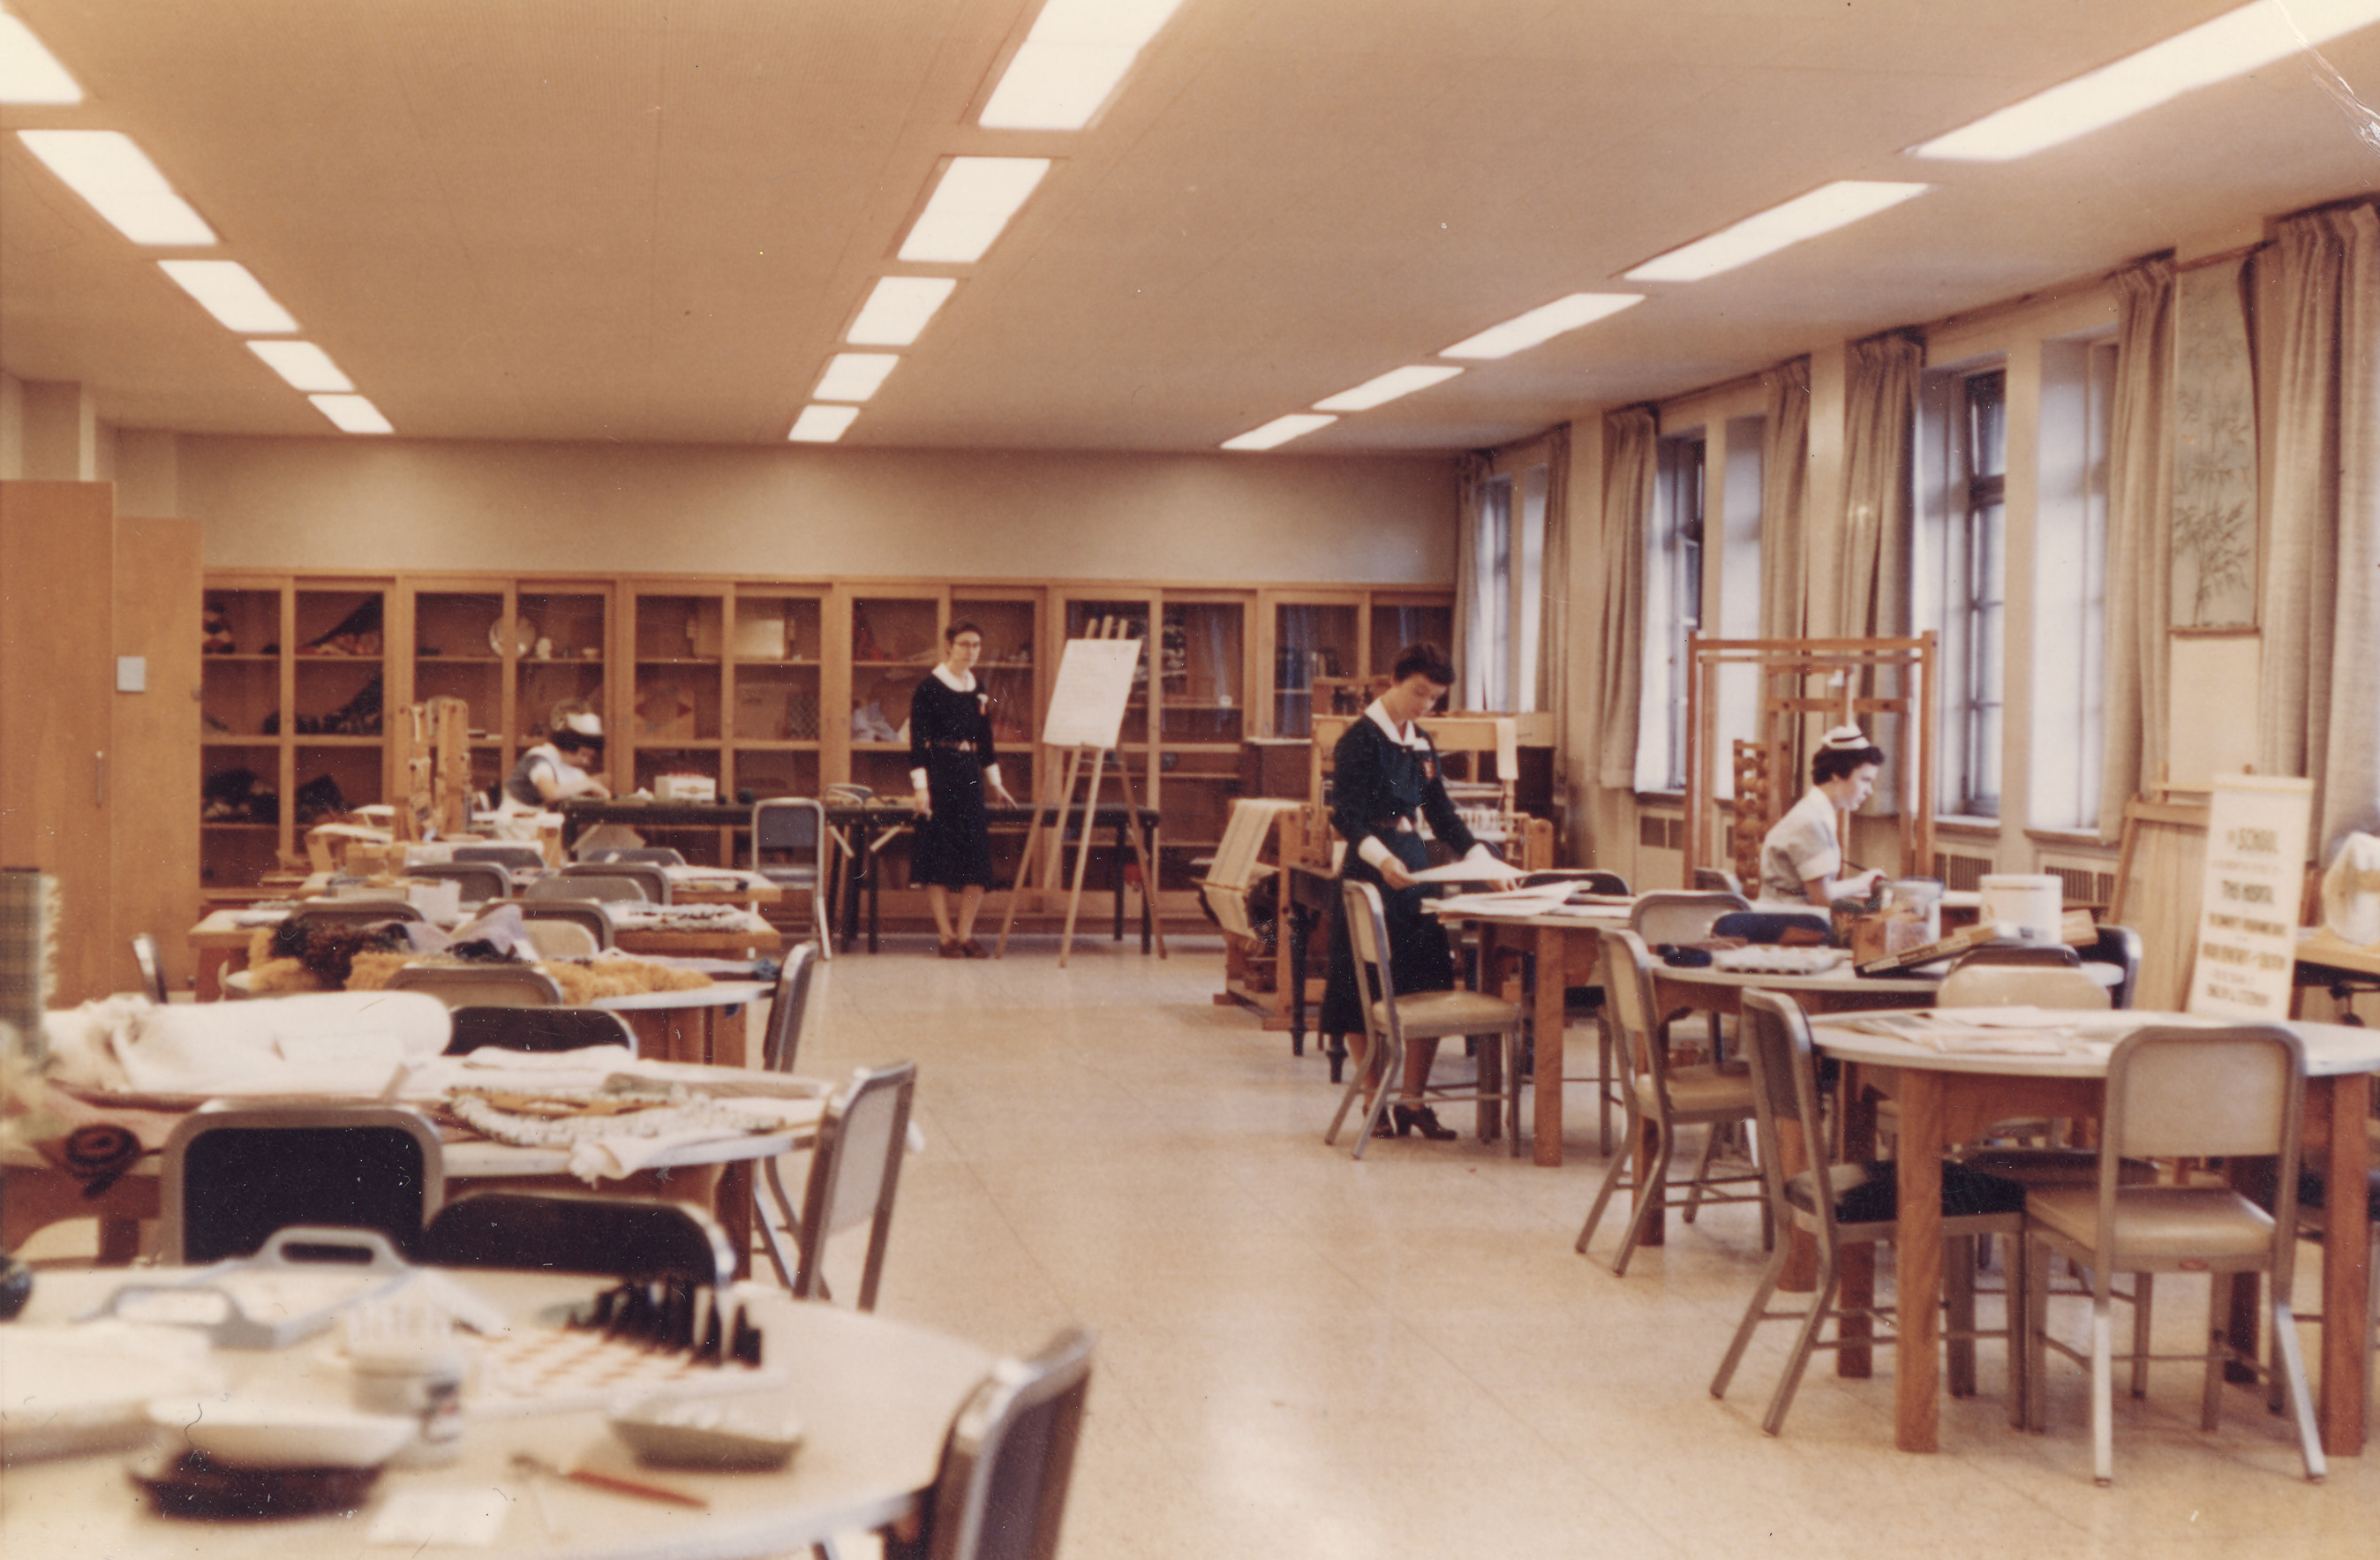 institutional room 1950s with tables